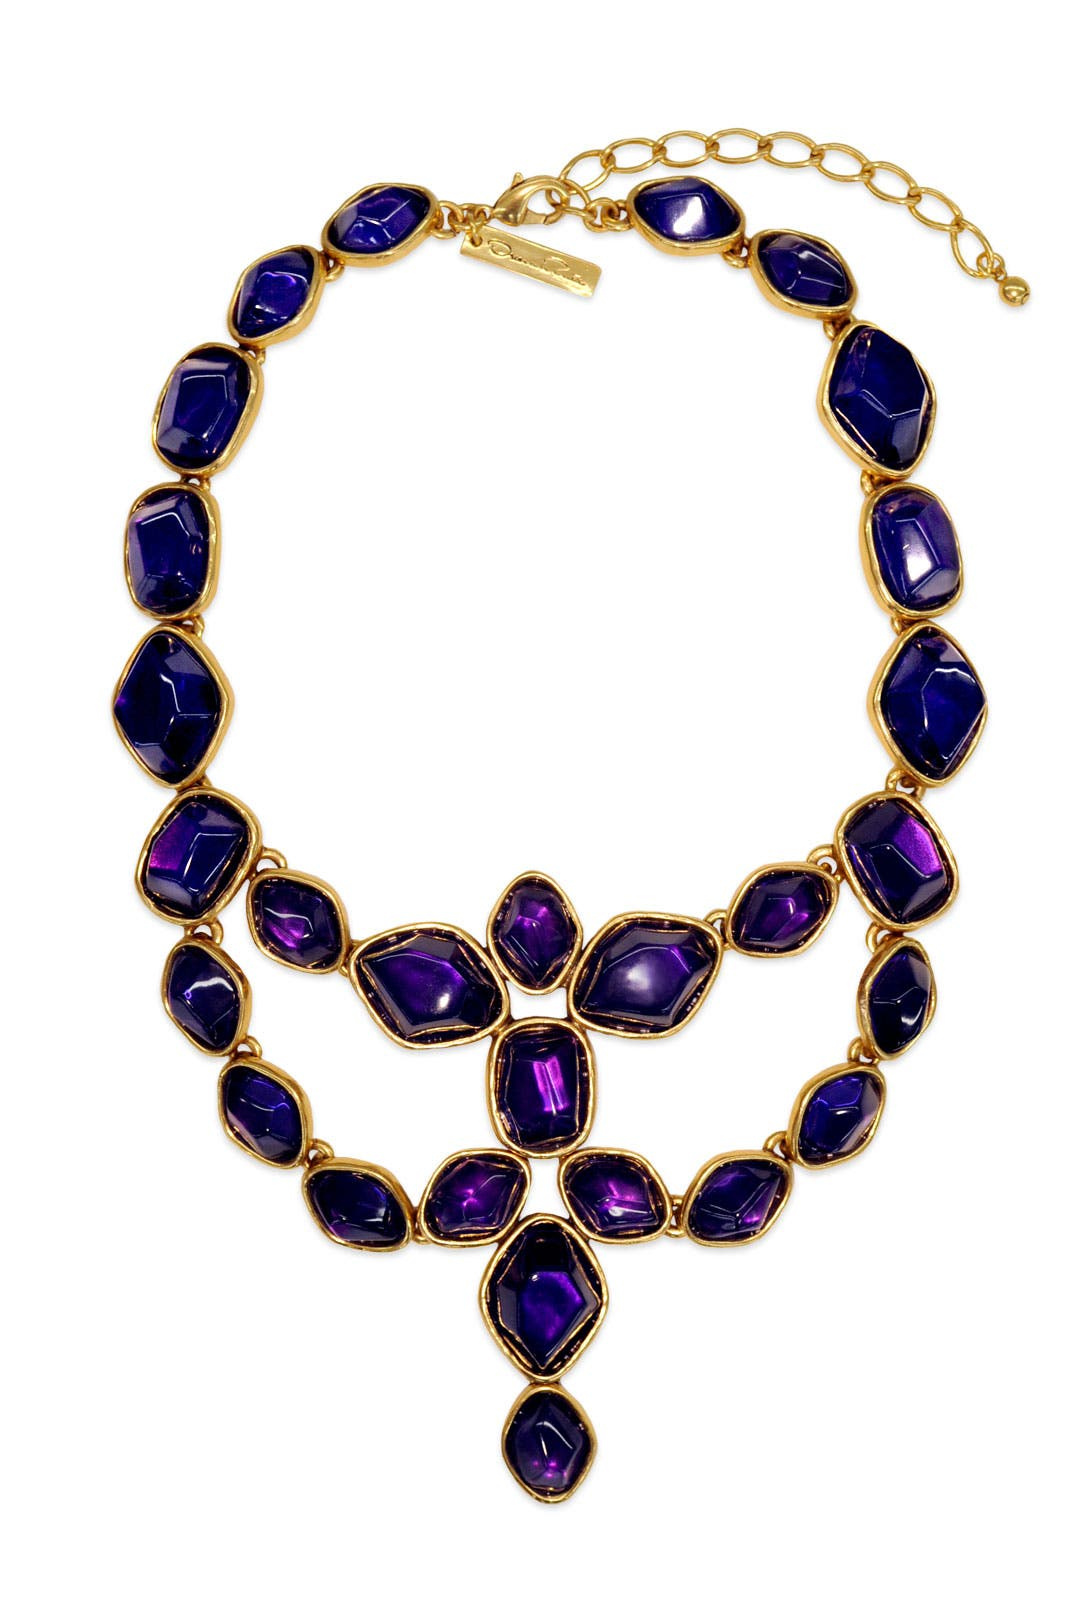 Deep Amethyst Statement Necklace by Oscar de la Renta